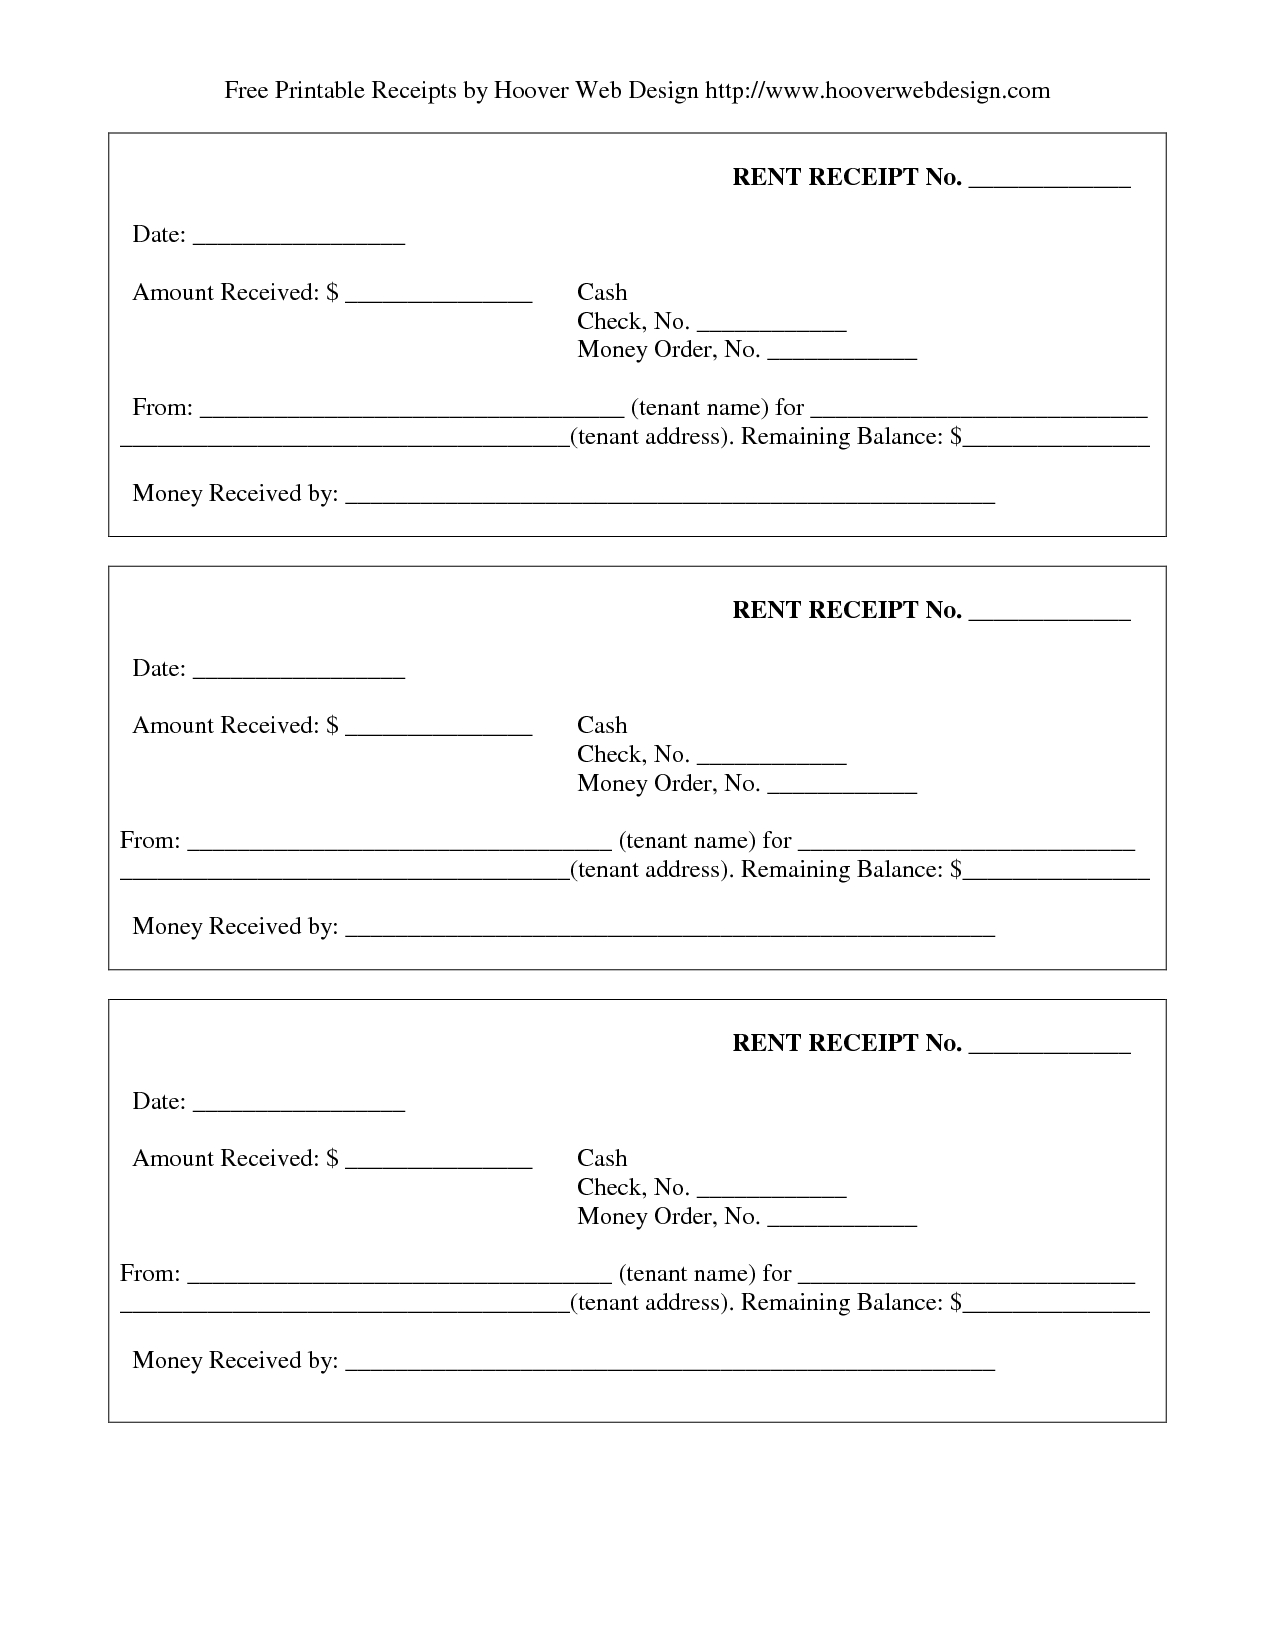 New Free Printable Receipt Templates #xlstemplate #xlsformats - Free Printable Receipt Template